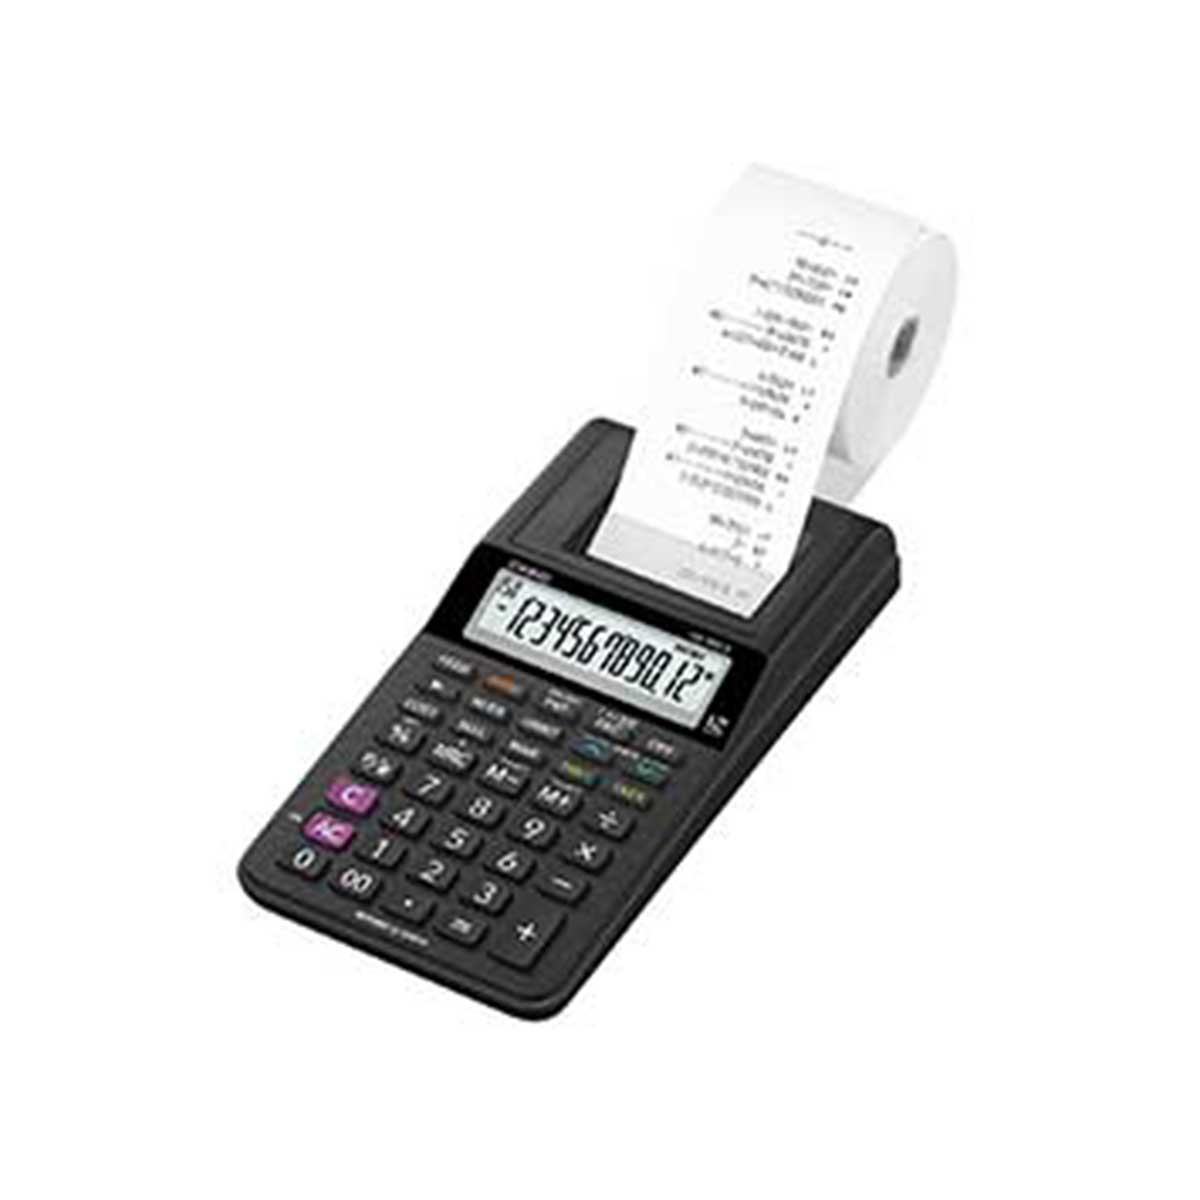 Casio HR-8RCE Print and Display Calculator